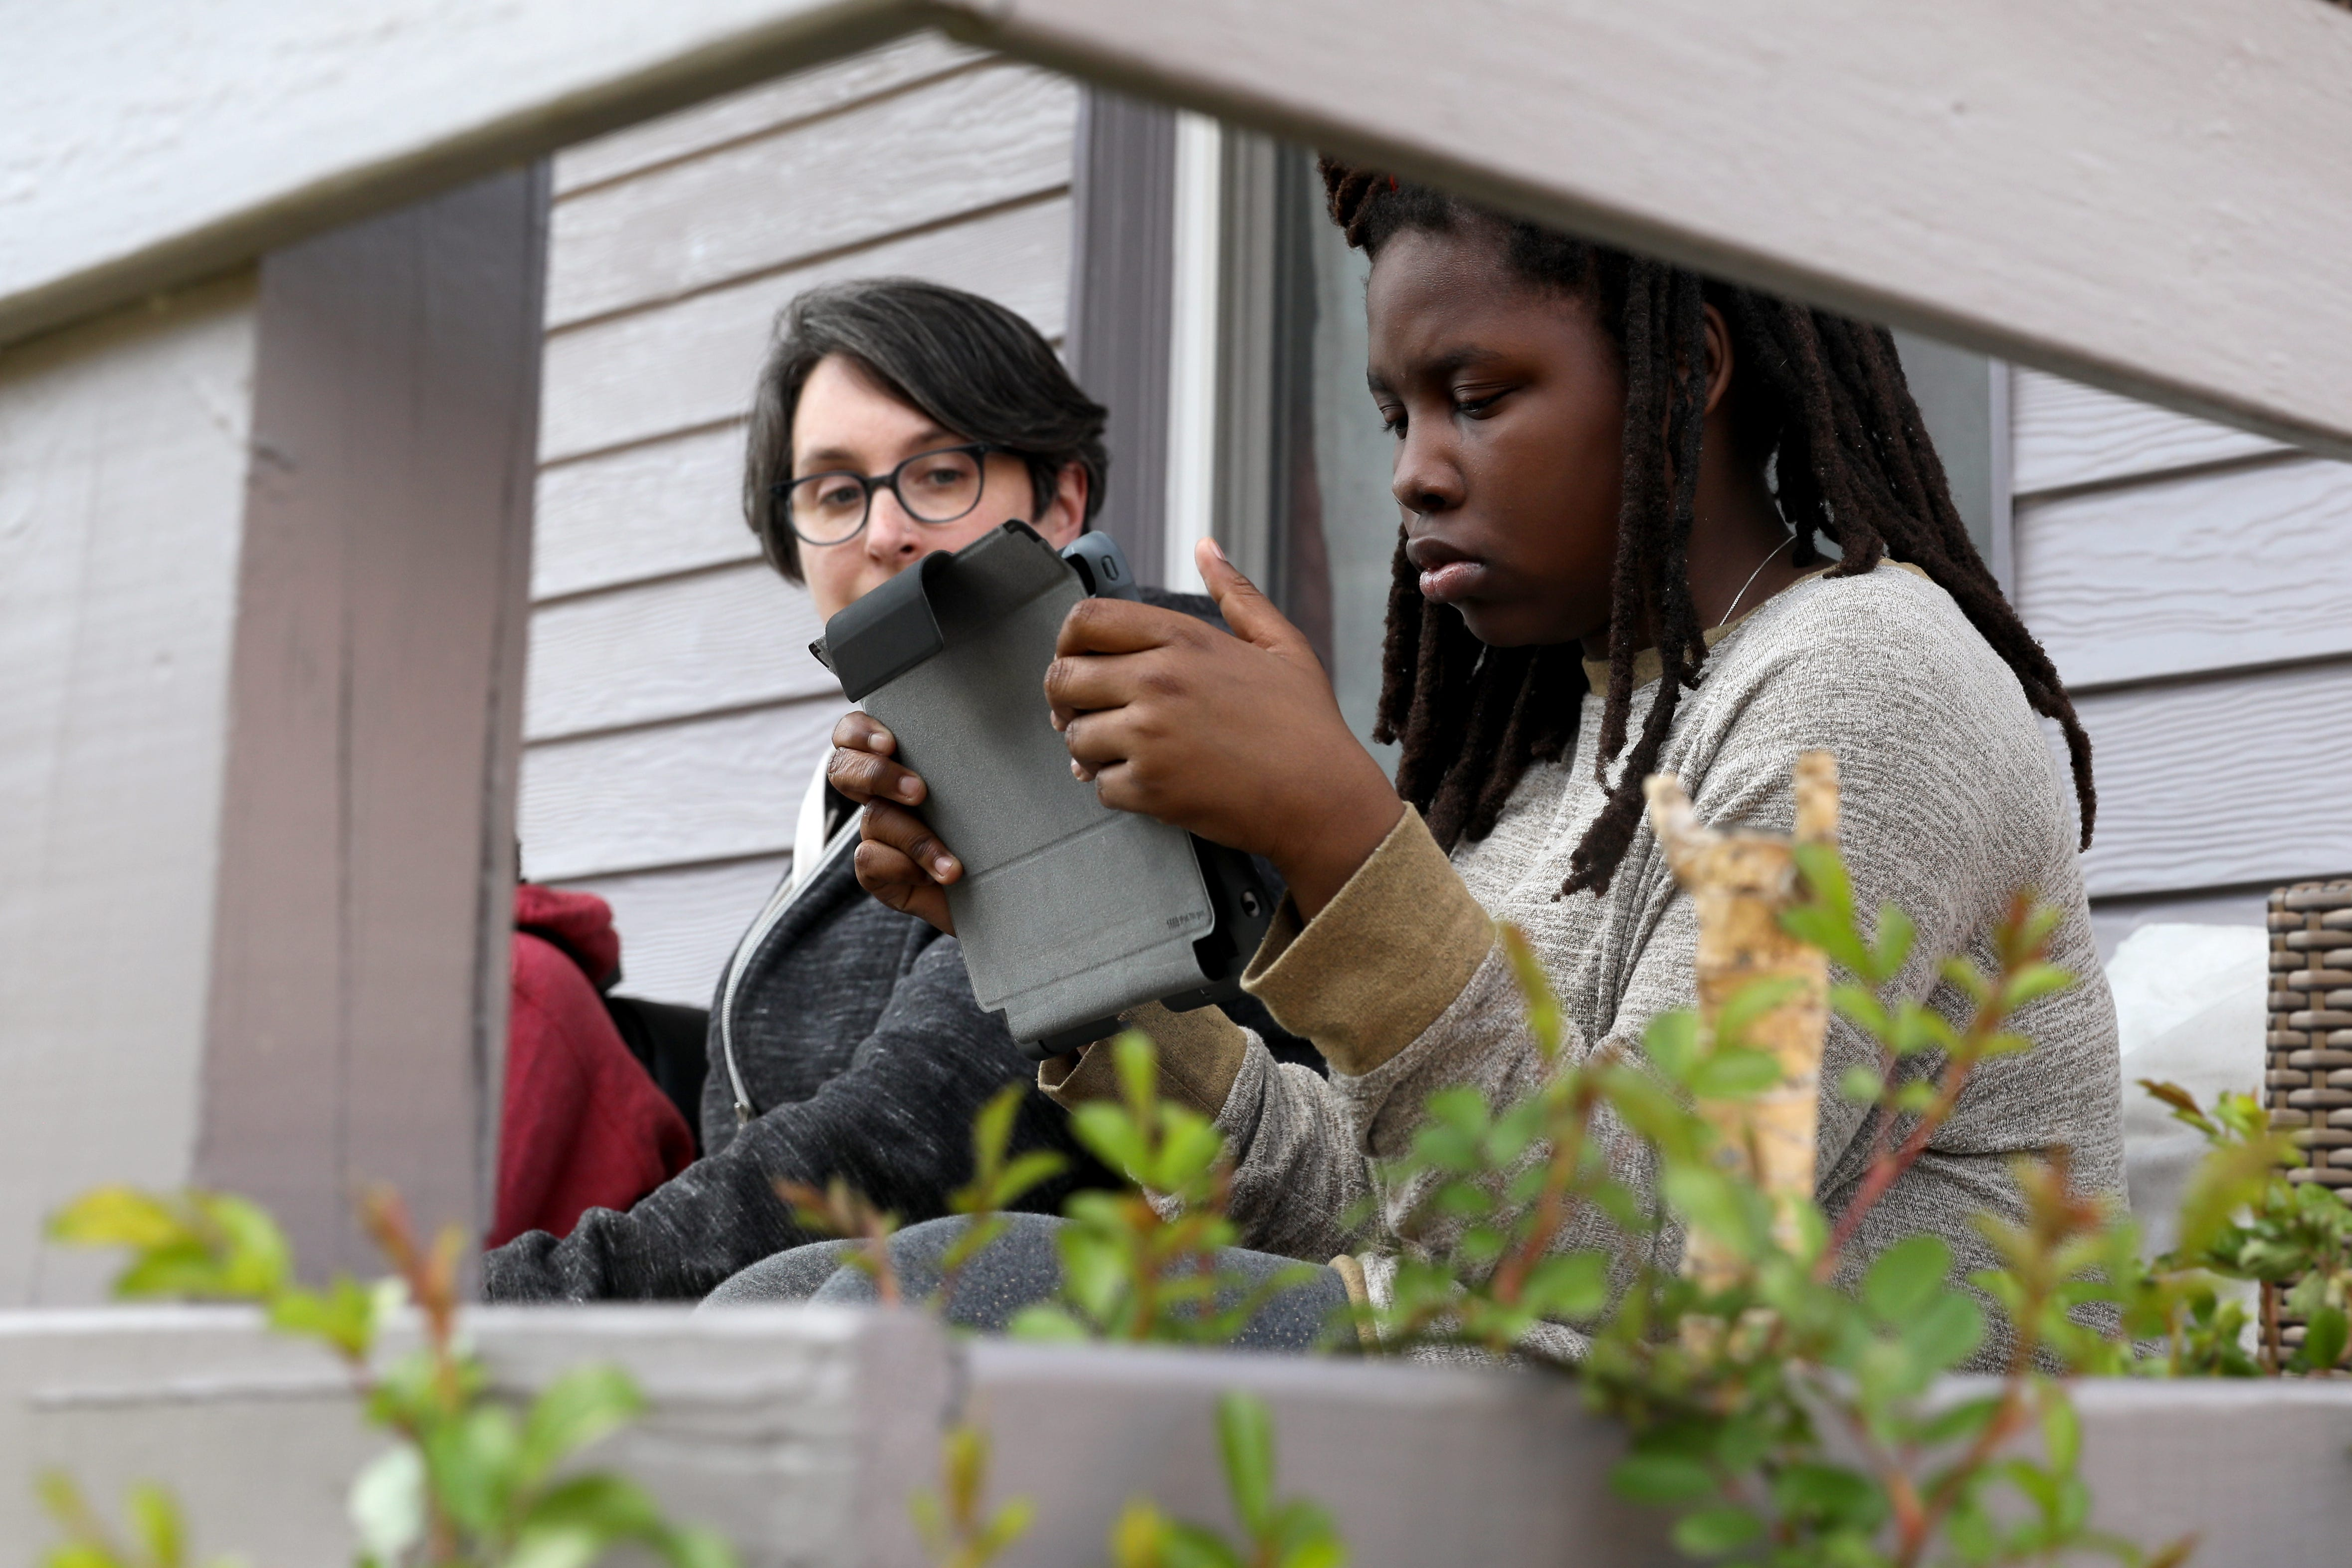 Rose Curtin, left, looks over Haddasha Revely-Curtin's shoulder while she does school work, Thursday, April 2, 2020, in Newport, Ky. Incoming seventh-grader Haddasha, age 12, had battled anxiety at the start of the pandemic, which is one reason Curtin decided to keep her three children home when school starts this fall.